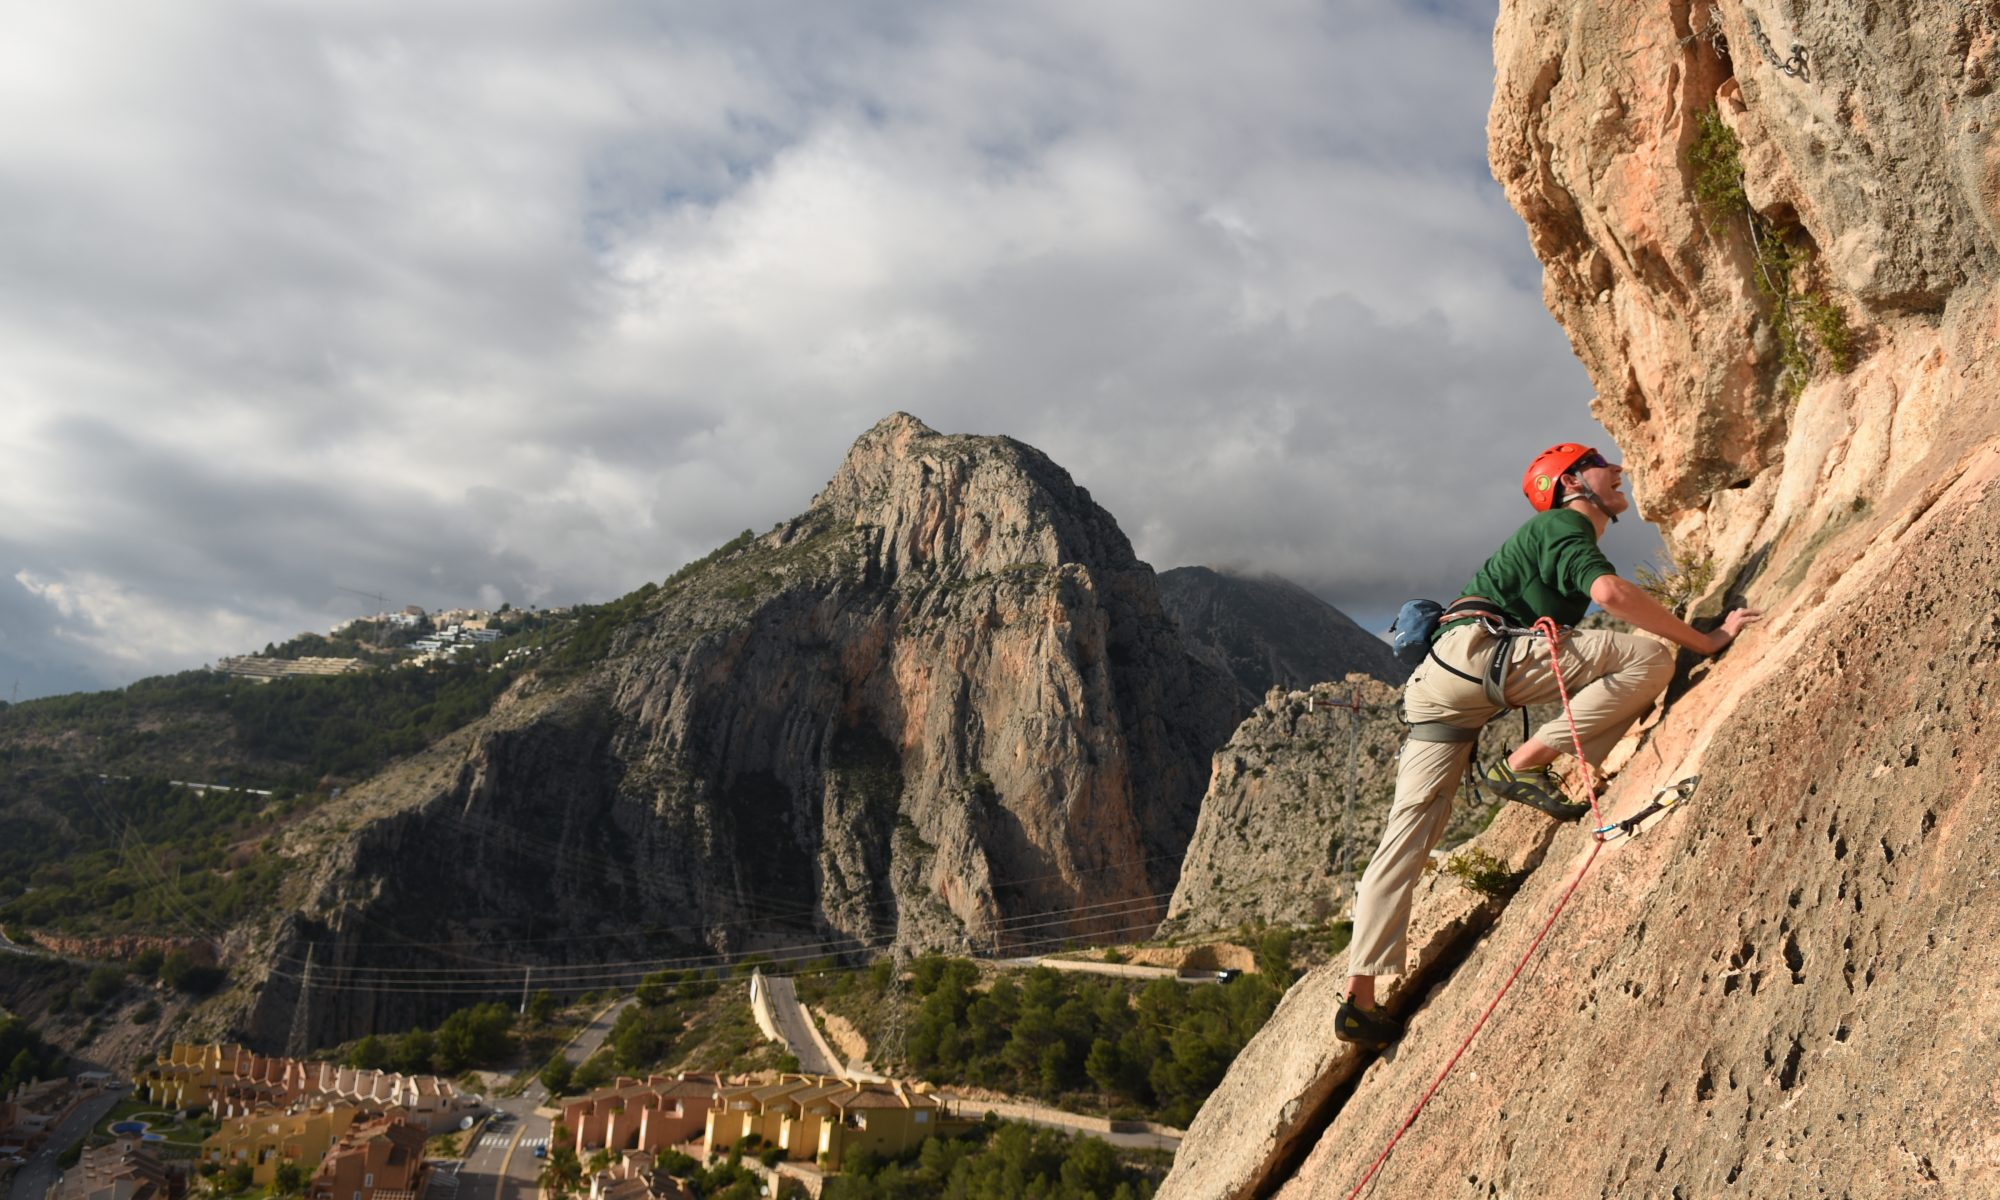 Cameron Hygate heading up to the chain on his first 6a Lobo at Sierra De Toix, Costa Blanca